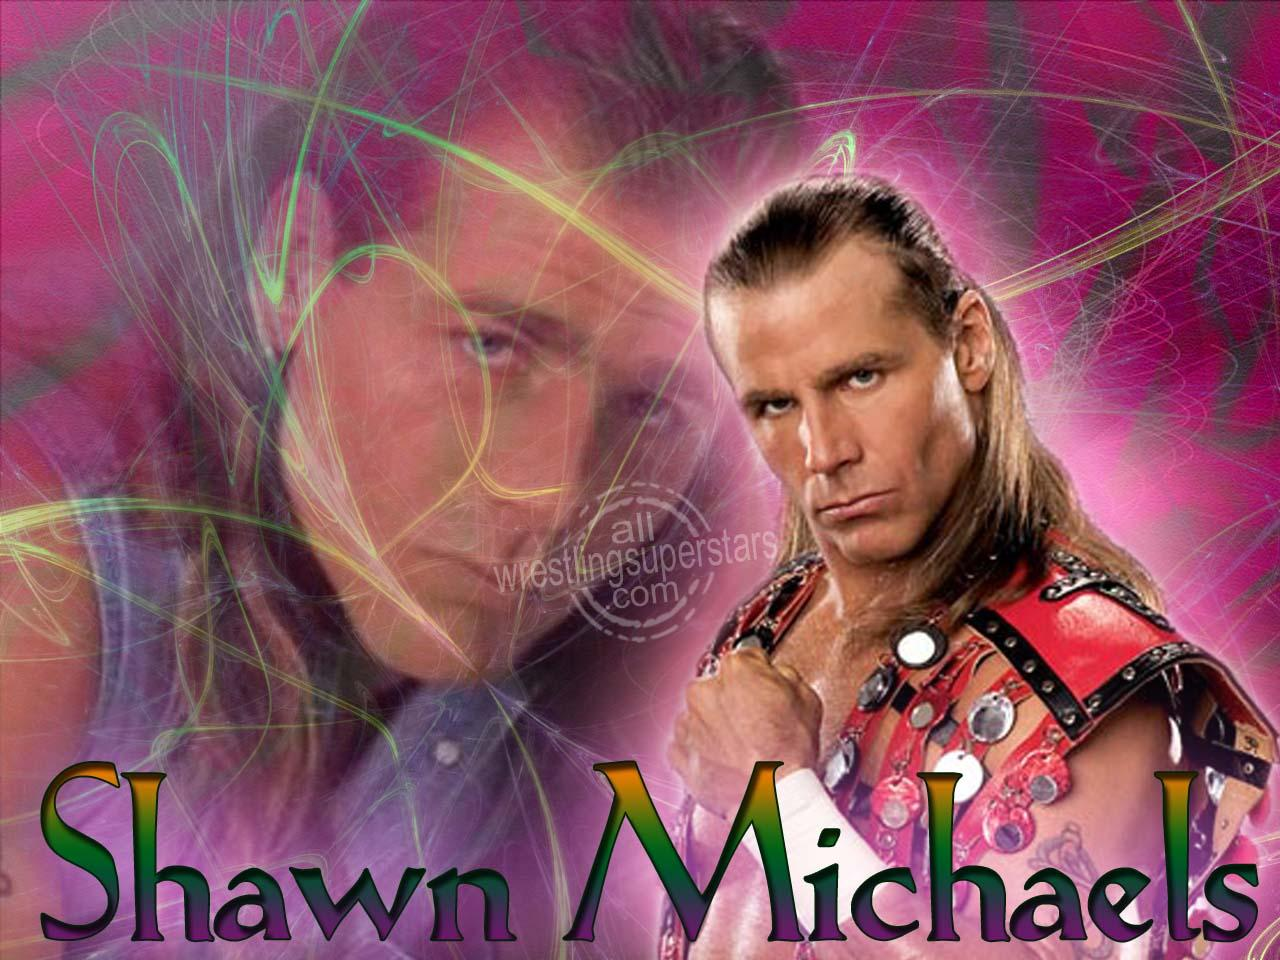 wwe shawn michaels wallpapers Wrestling Raw Smack 1280x960